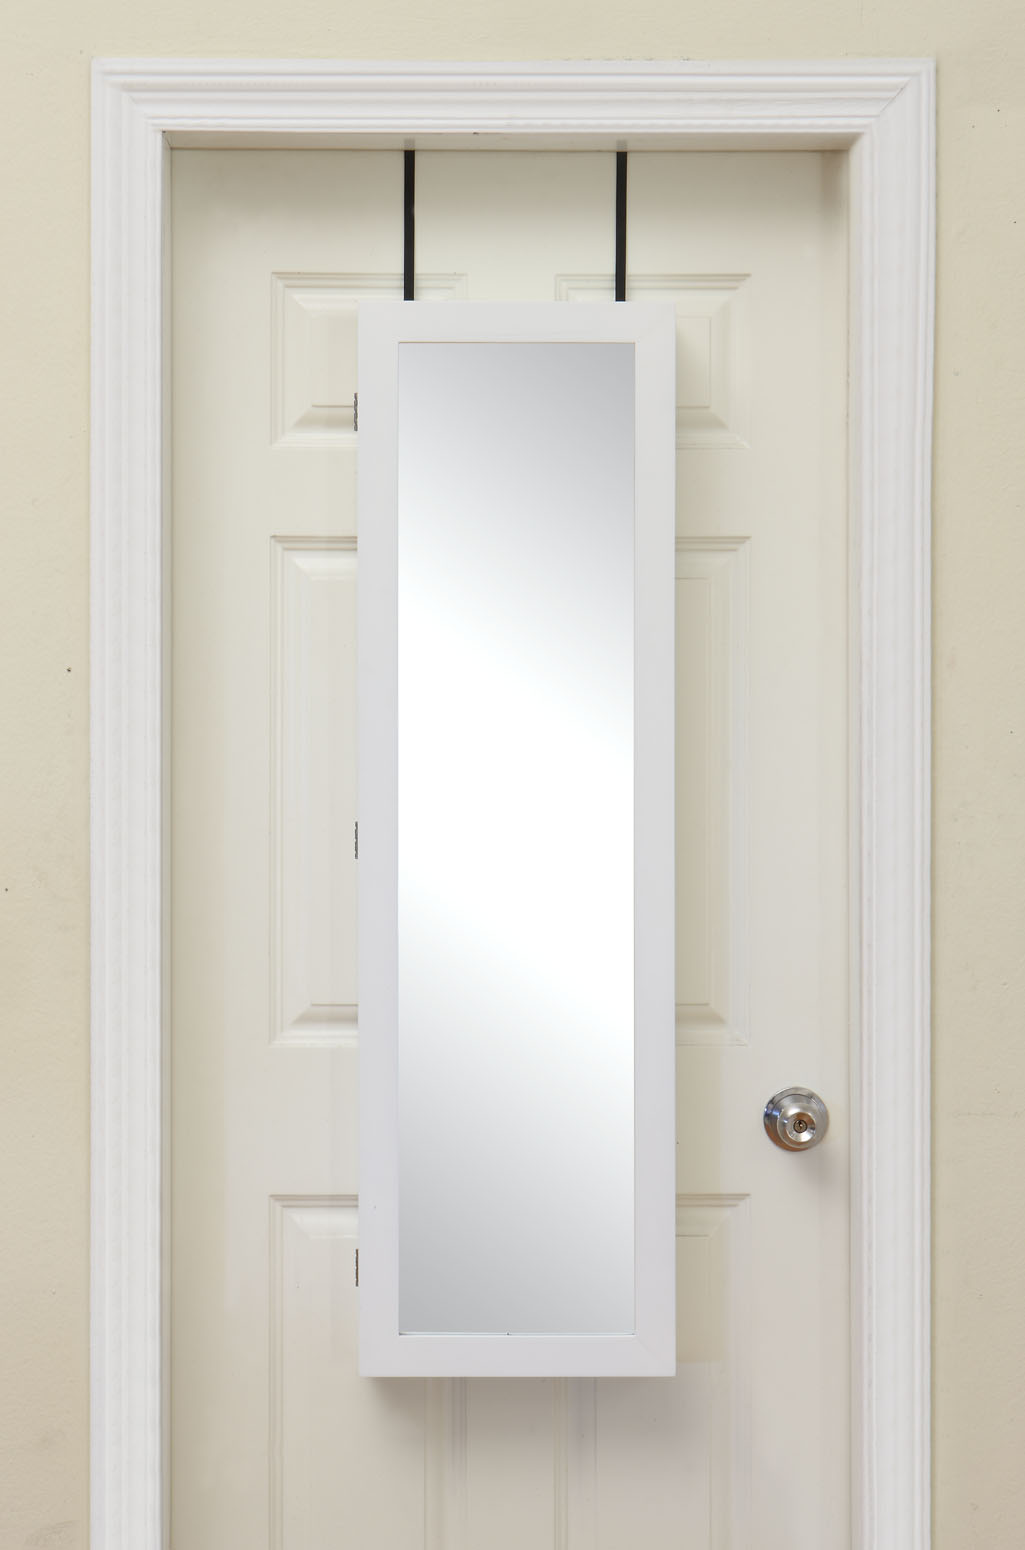 Bring Home Functional Style With An Overthedoor Mirror. Garage Ramp. Door Pull Handles. Ikea Garage Storage Cabinets. Garage Storage And Organization. Chamberlain Whisper Garage Door Opener. Fiberglass Garage Door. Exterior Garage Entry Door. Frosted Glass Interior Bathroom Doors